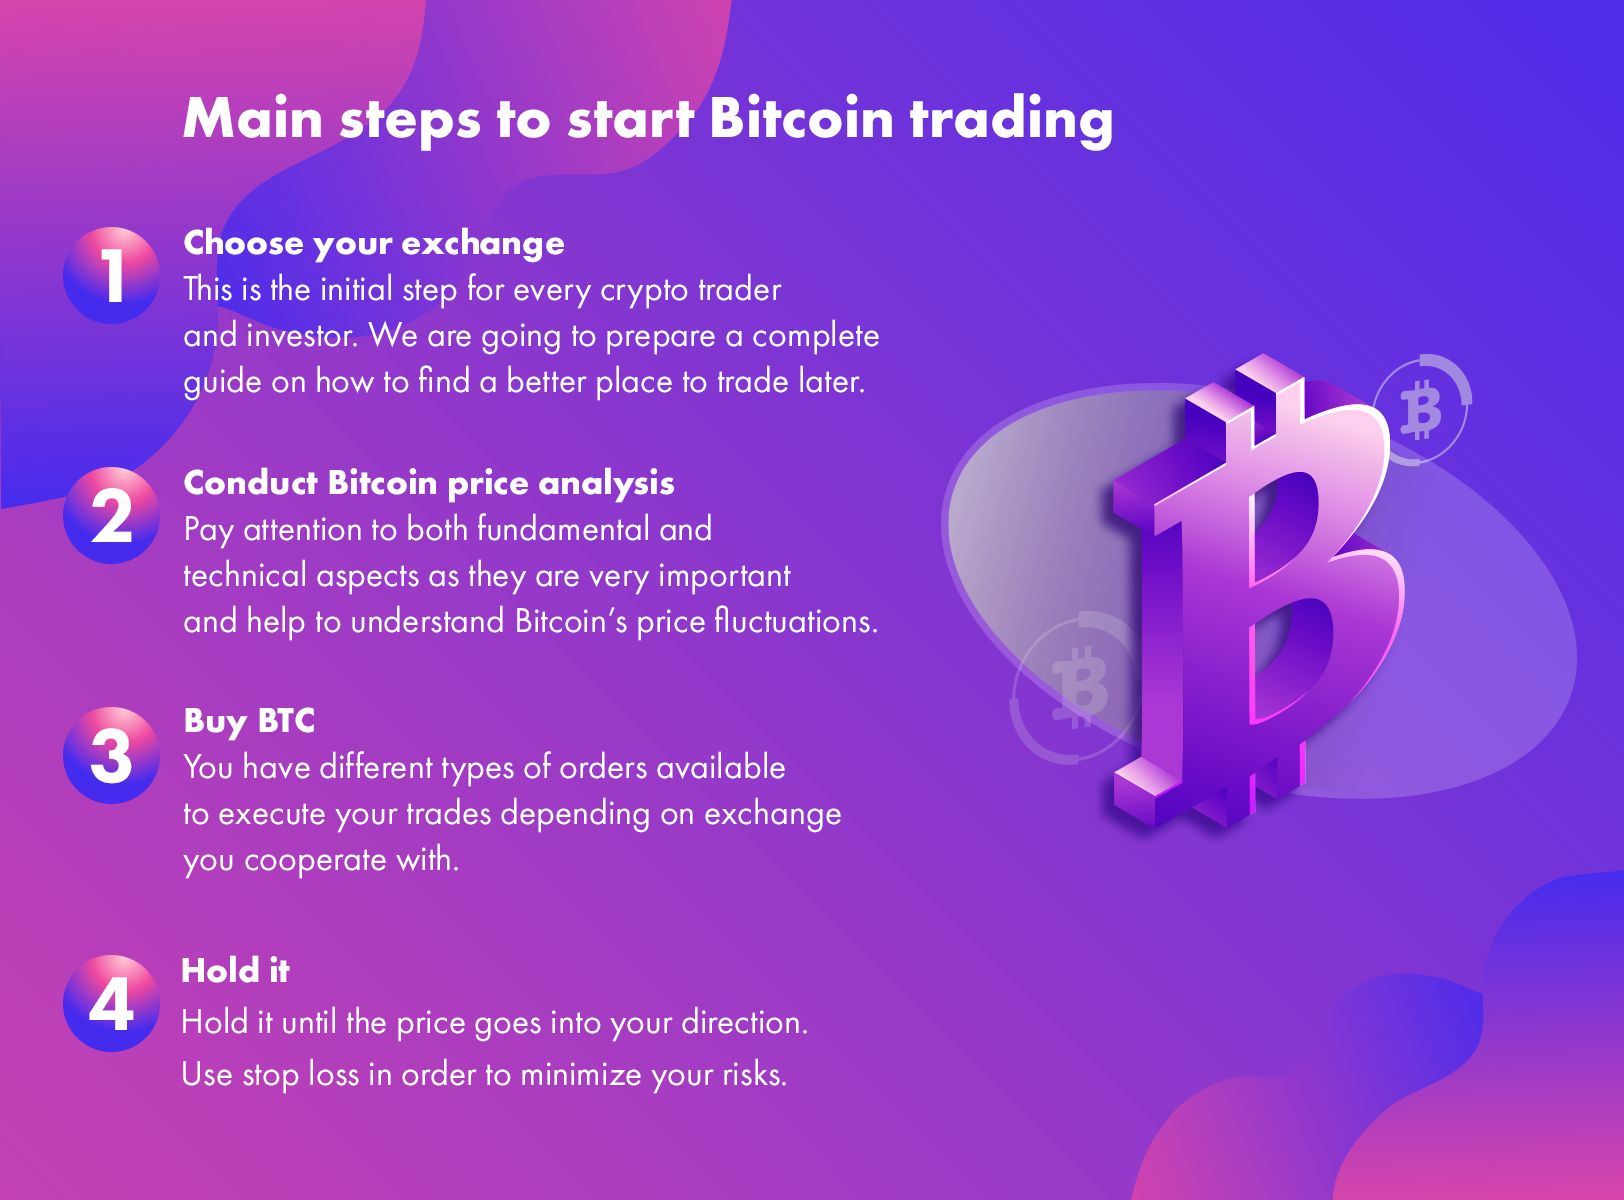 Main steps to start Bitcoin trading